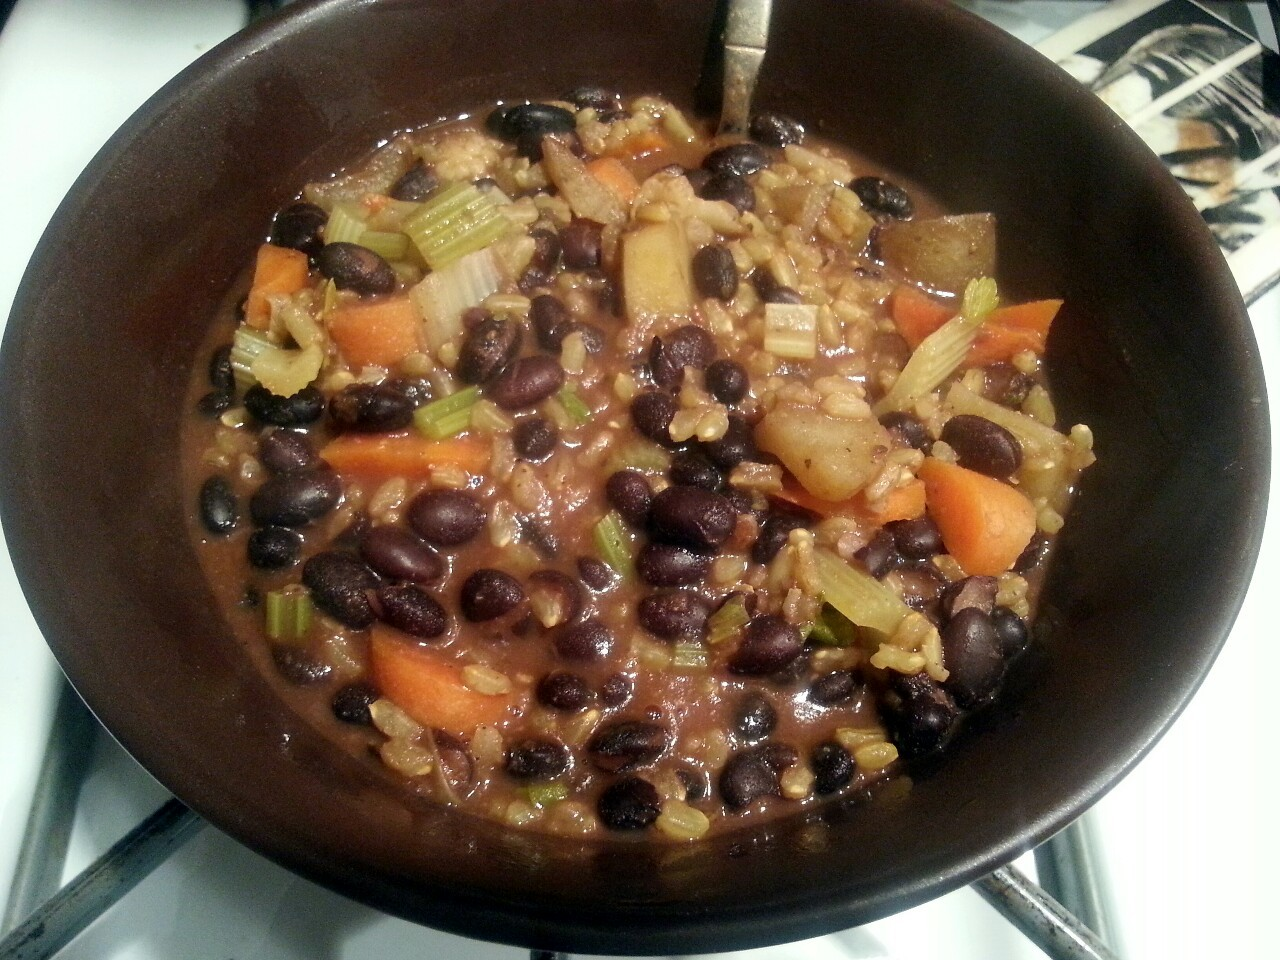 Chunky Black Bean Stew with Carrots, Potato, Celery and Brown Rice.  I soaked about 2 cups of dried beans overnight and then rinsed them and brought them back to a boil over new water. Then I simmered them for about 45 minutes to an hour with 2 tbls garlic, 1 tbls cumin, 1.5 tbls chili powder, and cayenne to taste.  I actually used leftovers from the potato casserole I made the night before to add to the beans, but you can bake about 4 potatoes, 5 carrots, and 5 stalks of celery for about 30 minutes before adding them to the beans. Add the veggies after beans have simmered for 45 minutes, and then let it all simmer with an added cup of veggie broth, salt and pepper to taste, and a dash more garlic, cumin, and cayenne. Cause I like it hott.   Let it simmer uncovered if you want it super thick, or keep covered to hold on to more of the broth.   Serve and eat with a bunch of tortilla chips if you want to get serious.